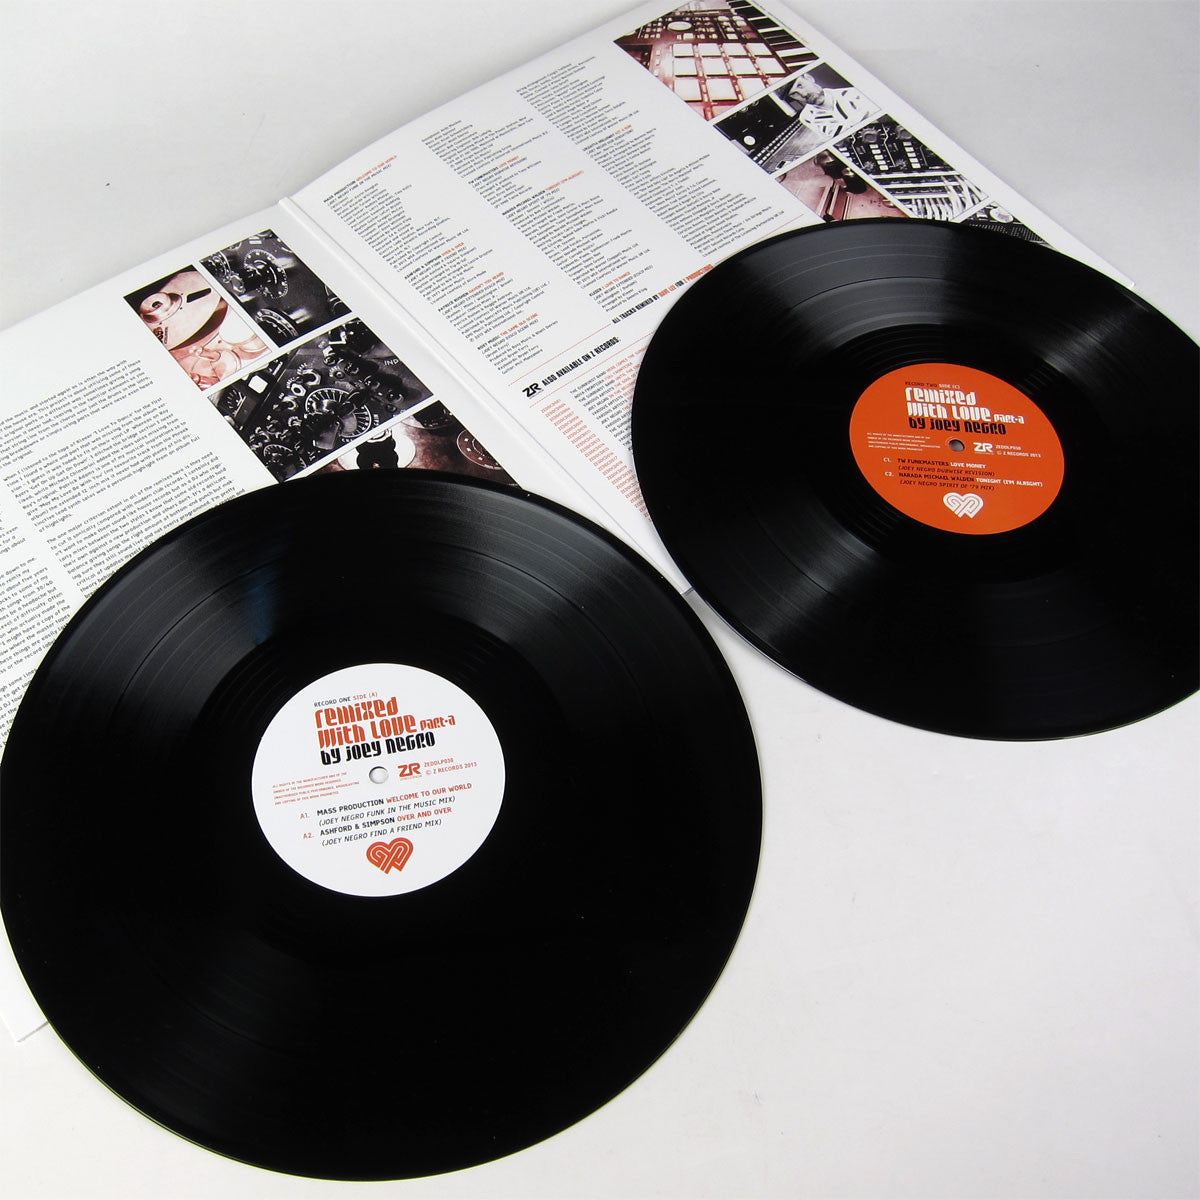 Joey Negro: Remixed With Love Part A 2LP gatefold